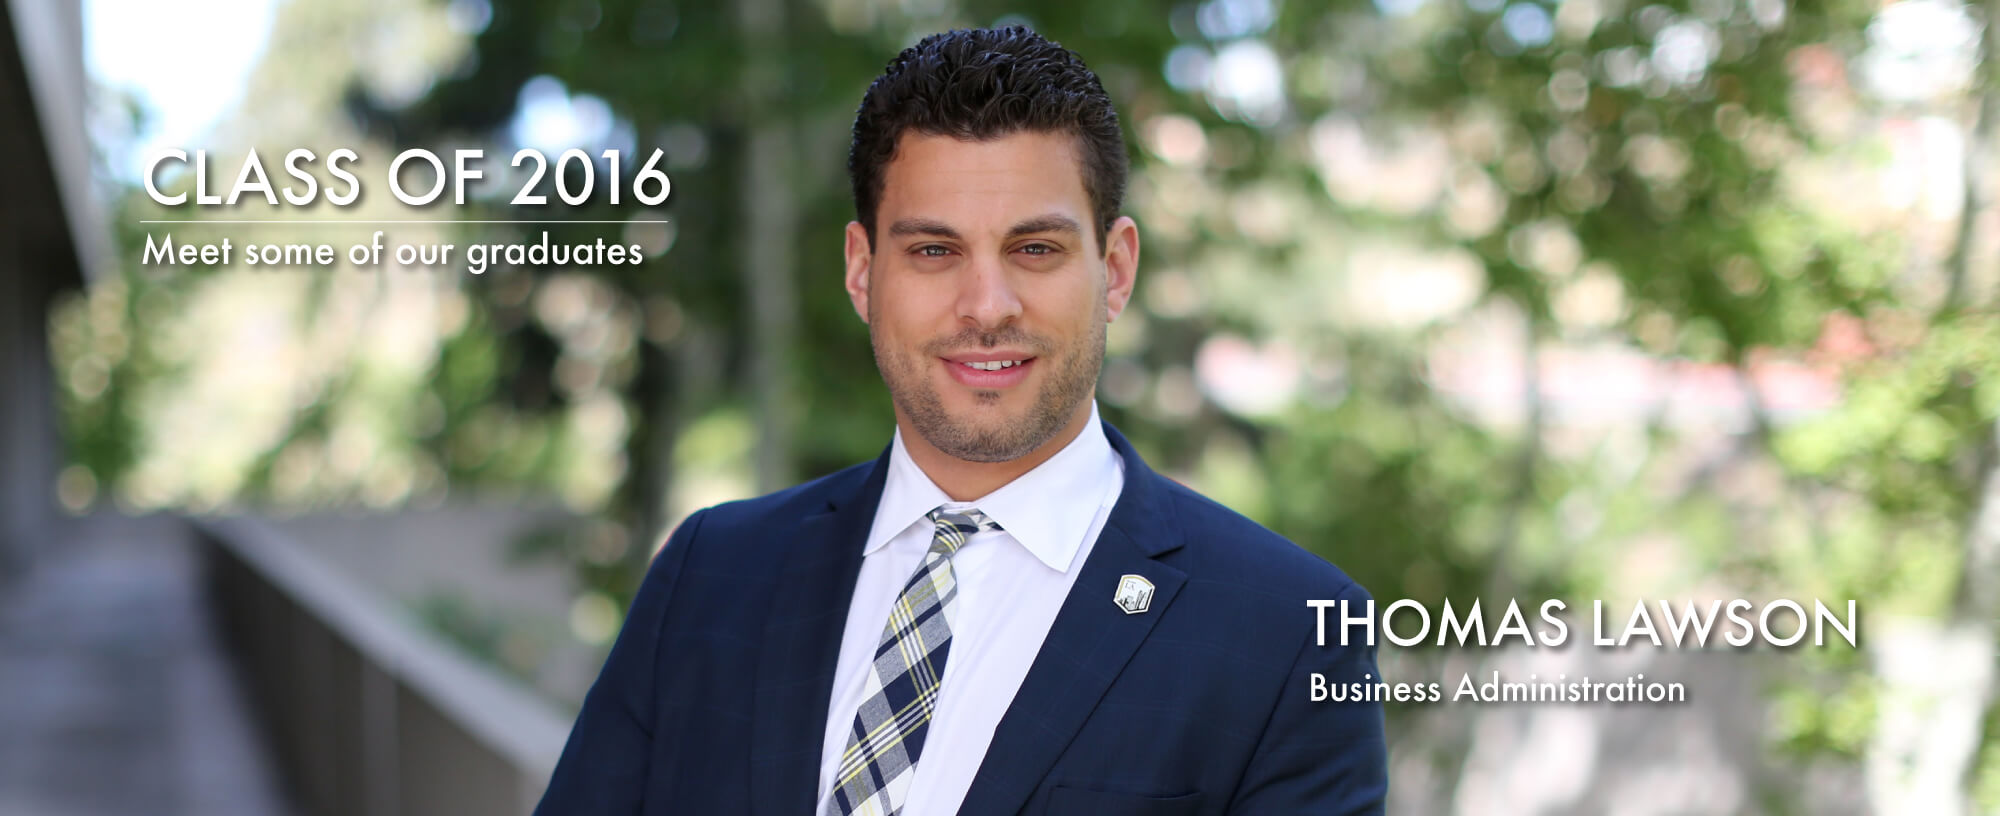 Class of 2016. Meet some of our graduates. Thomas Lawson